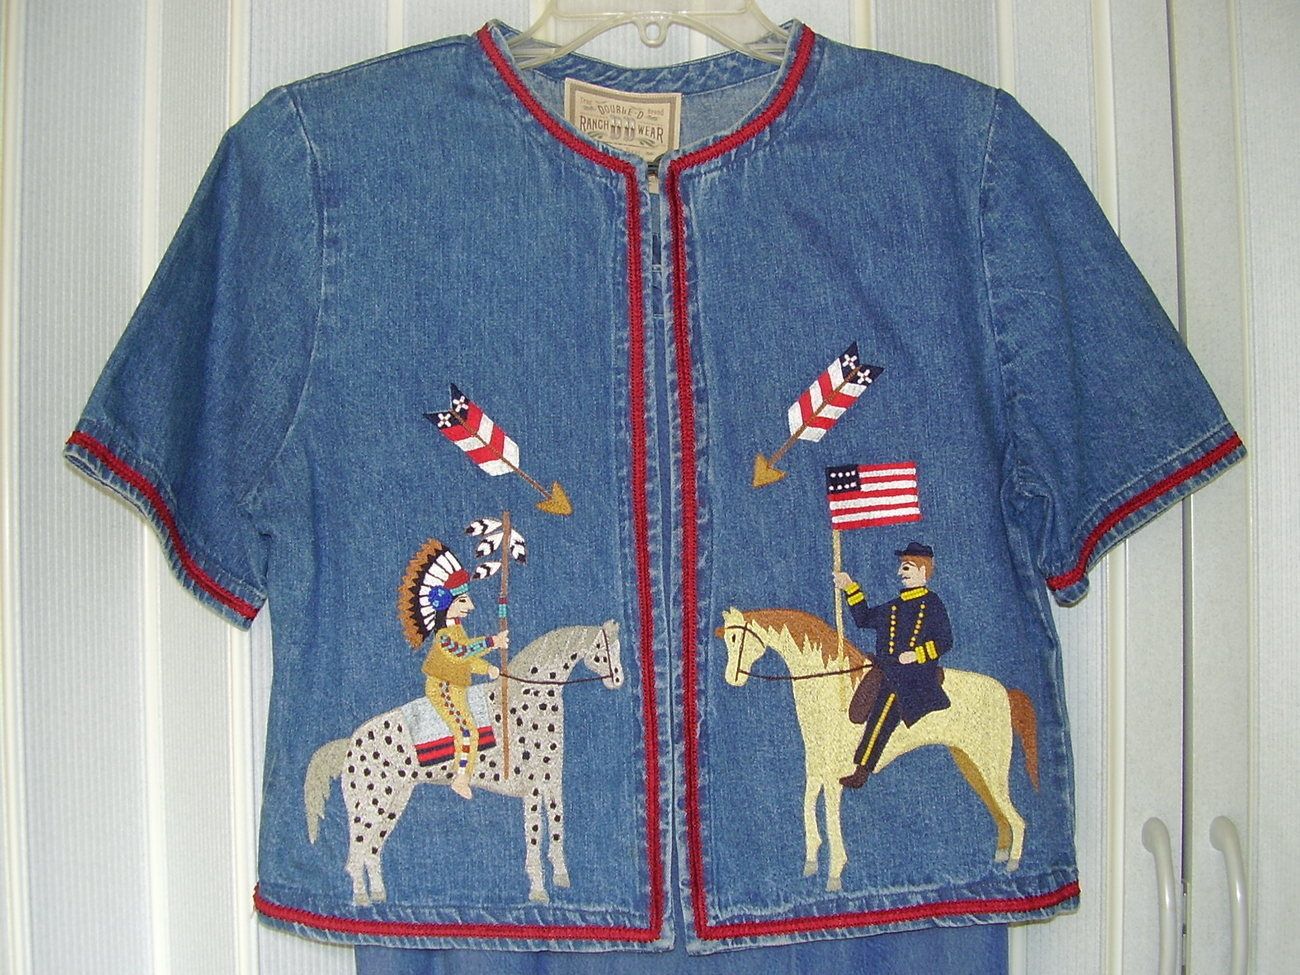 'Double D Ranch Wear' Beaded & Embroidered Denim Jacket